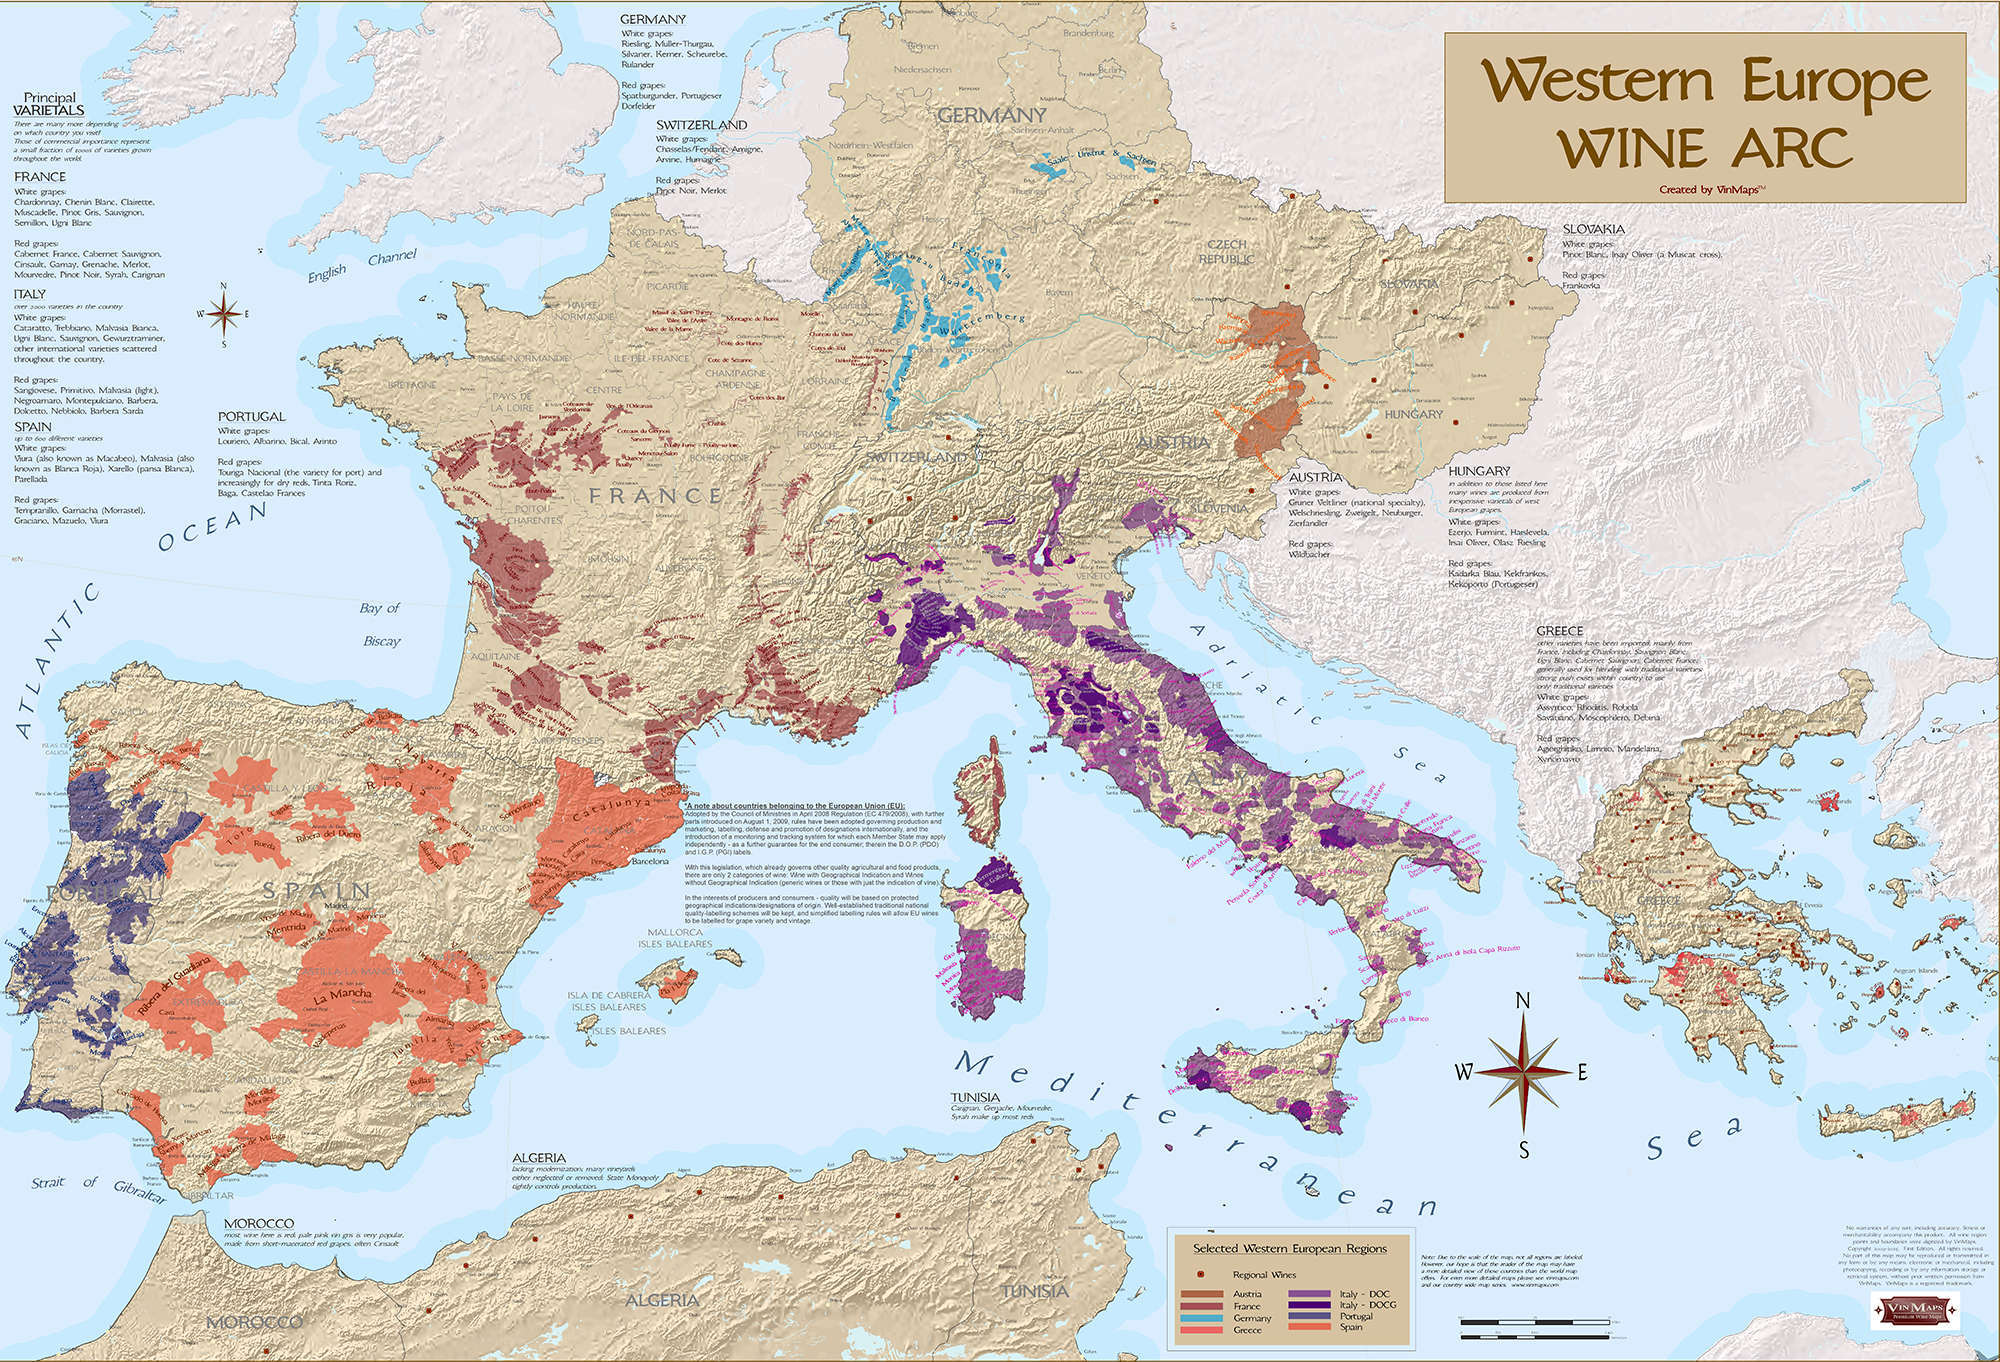 Western Europe Wine Arc on detailed map of europe, google earth map of europe, crete on a map of europe, latest map of europe, the physical map of europe, full screen map of europe, downloadable map of europe, complete map of europe, clear map of europe, line map of europe, war map of europe, need map of europe, study map of europe, printable blank map of europe, ancient old map of europe, high resolution map of europe, london on map of europe, old world map of europe, vintage map of europe, political map of western europe,